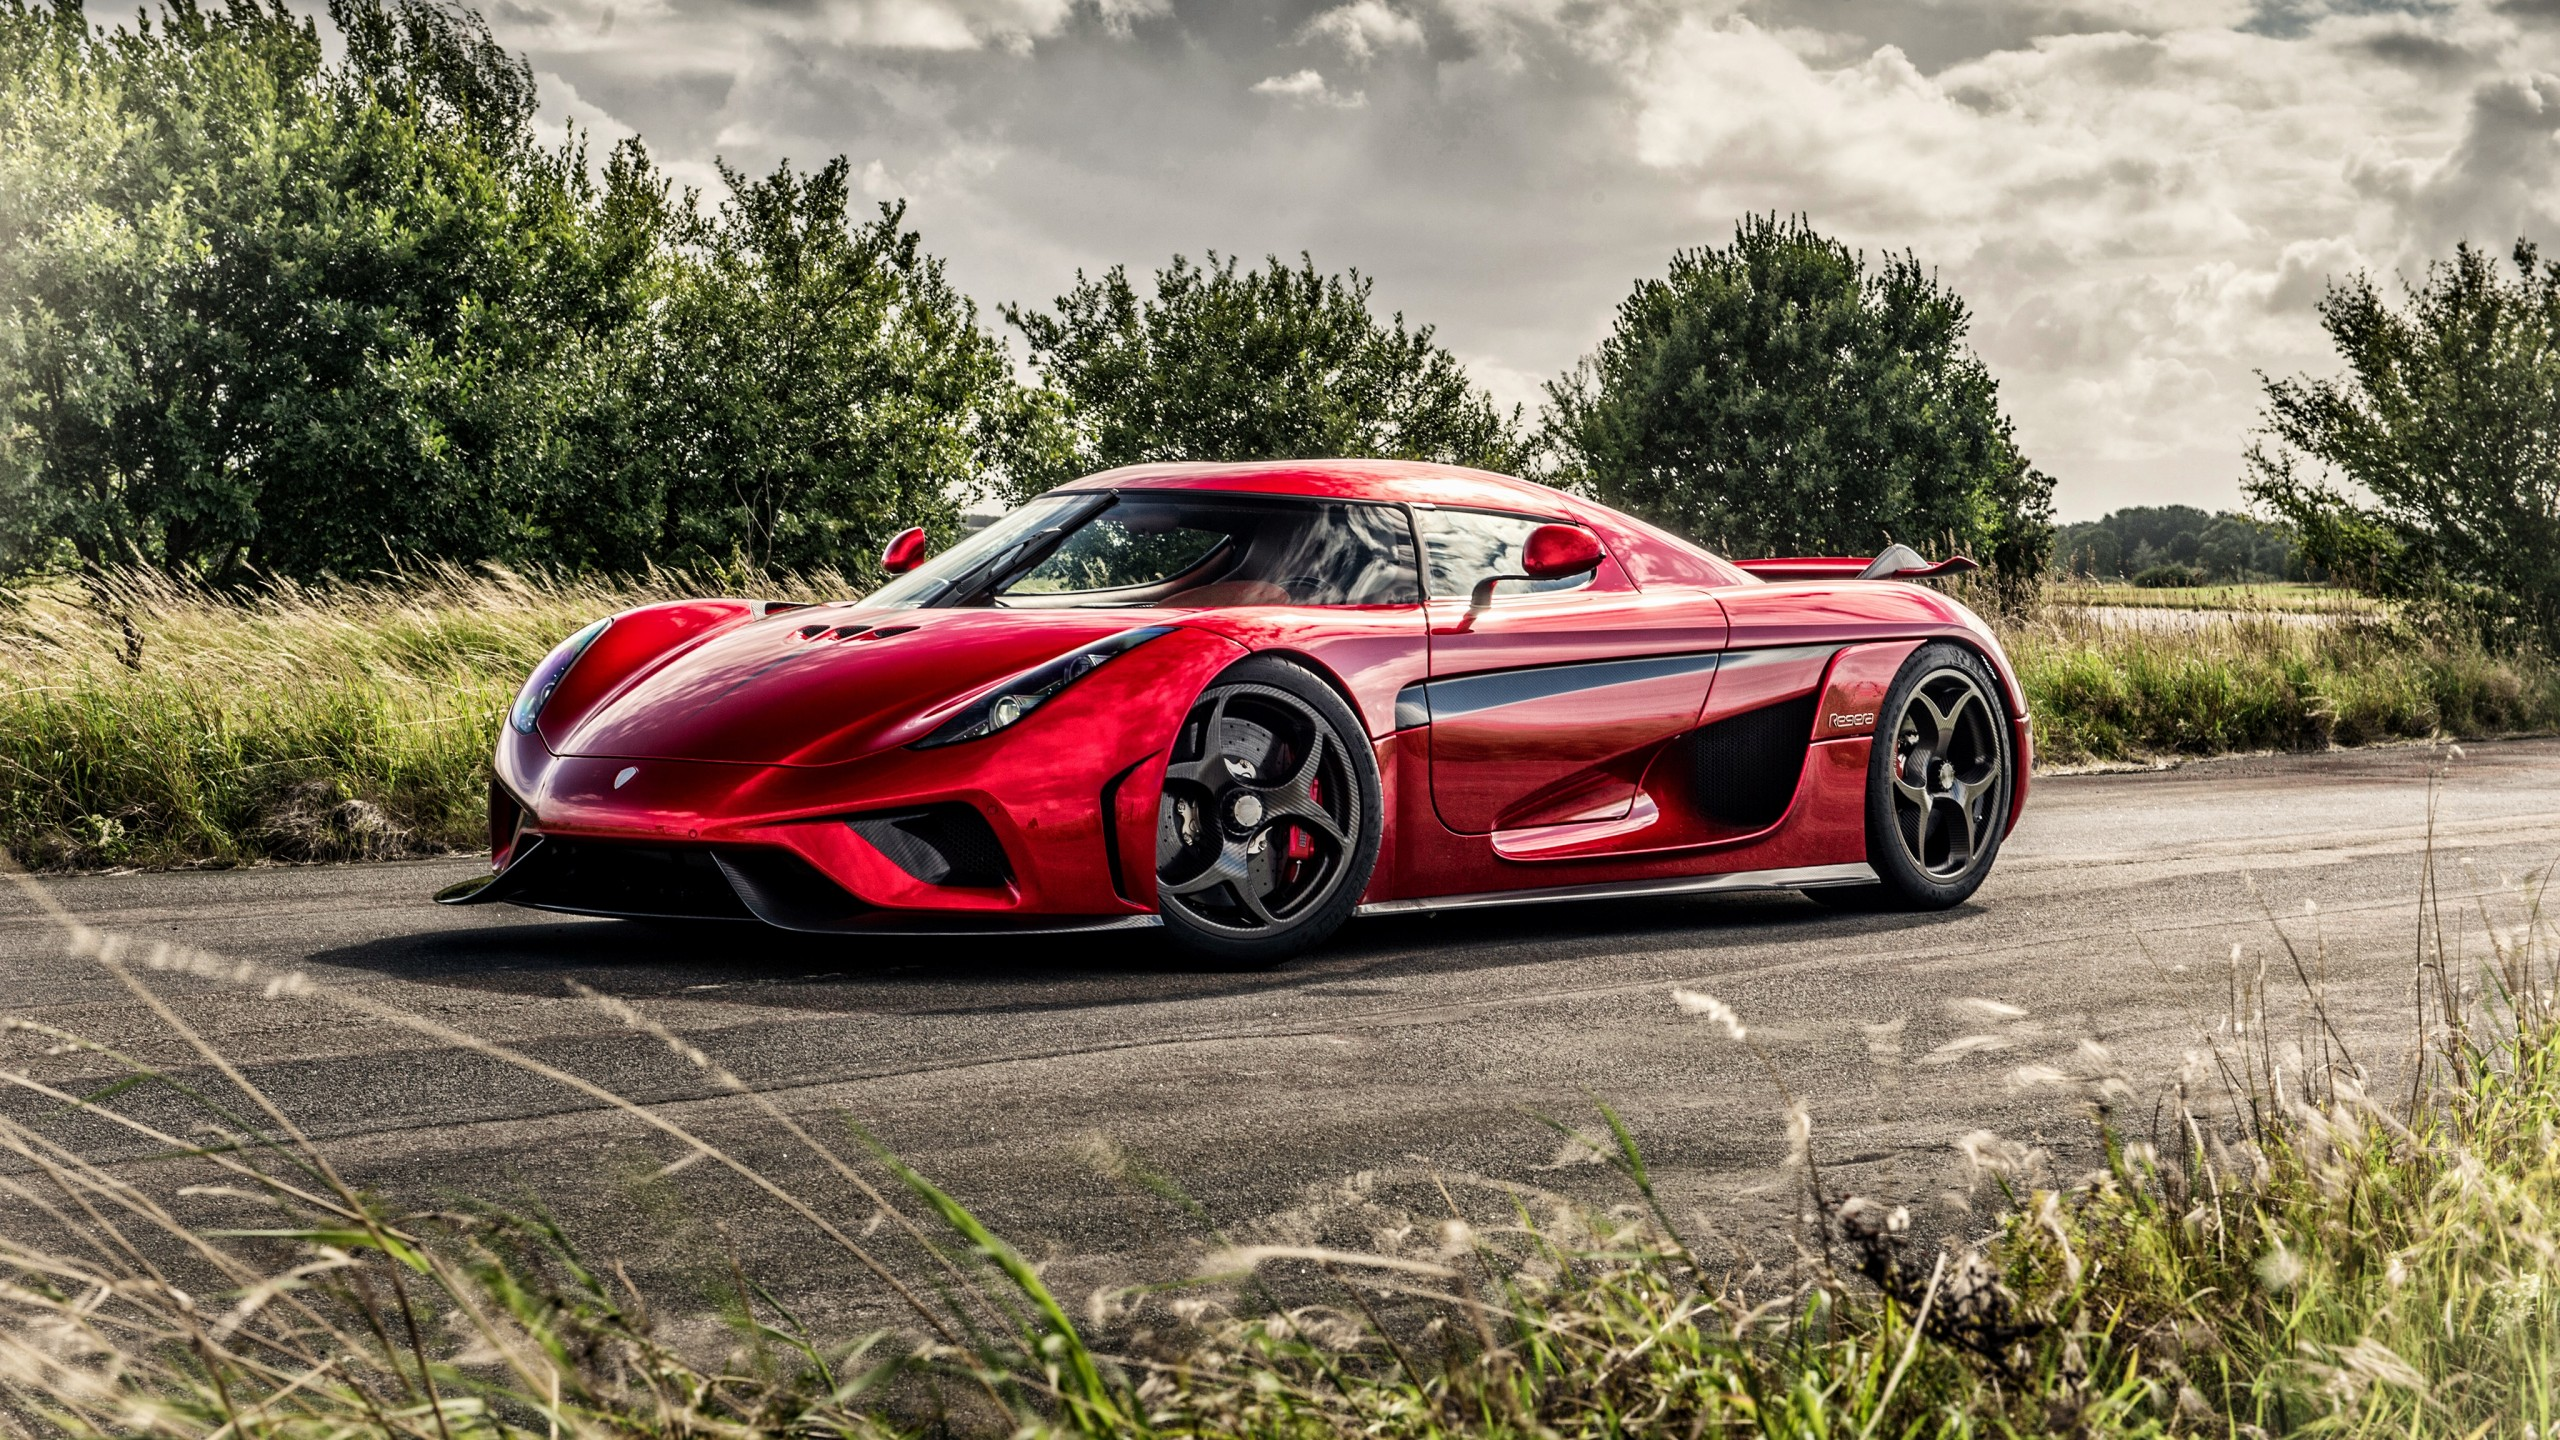 Hd Wallpapers Cars Ferrari 2017 Koenigsegg Regera 4k Wallpaper Hd Car Wallpapers